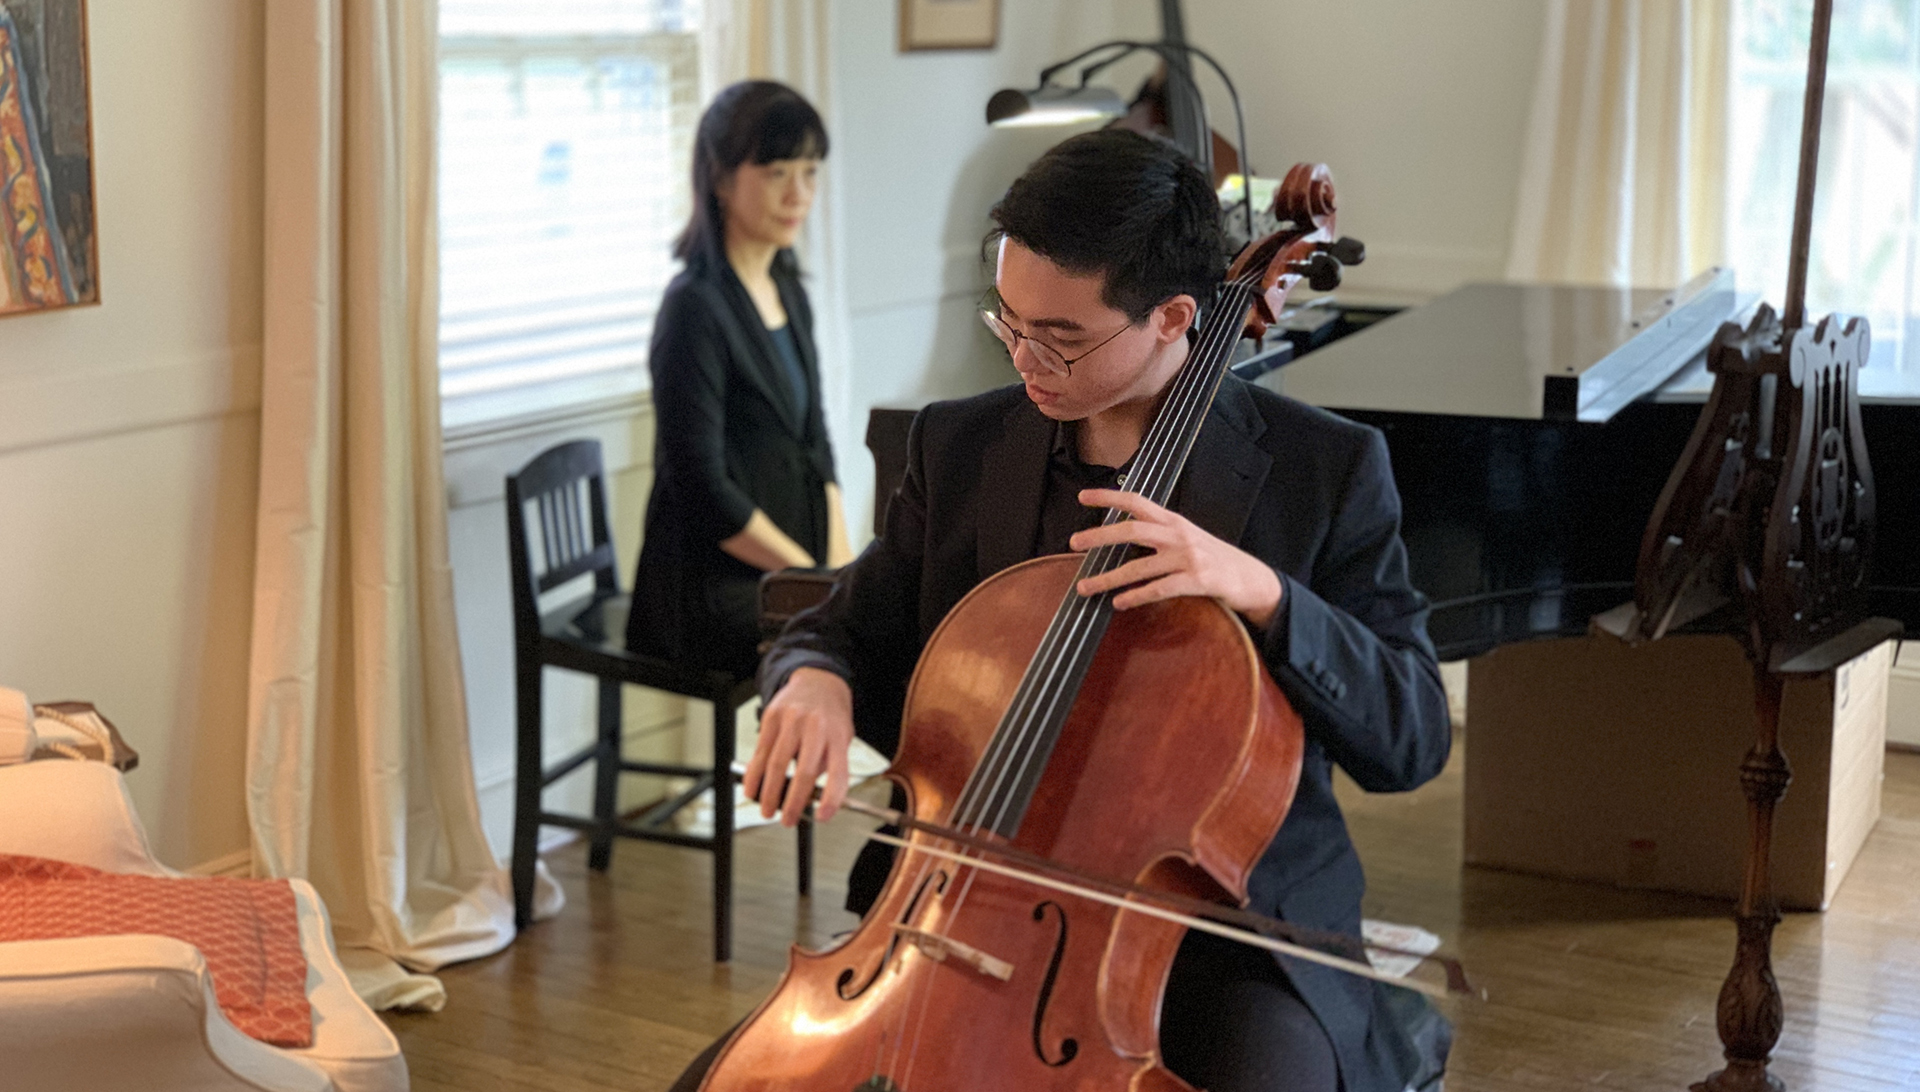 Dylan Shih Wu is a 15 year old Island Symphony Orchestra Winner